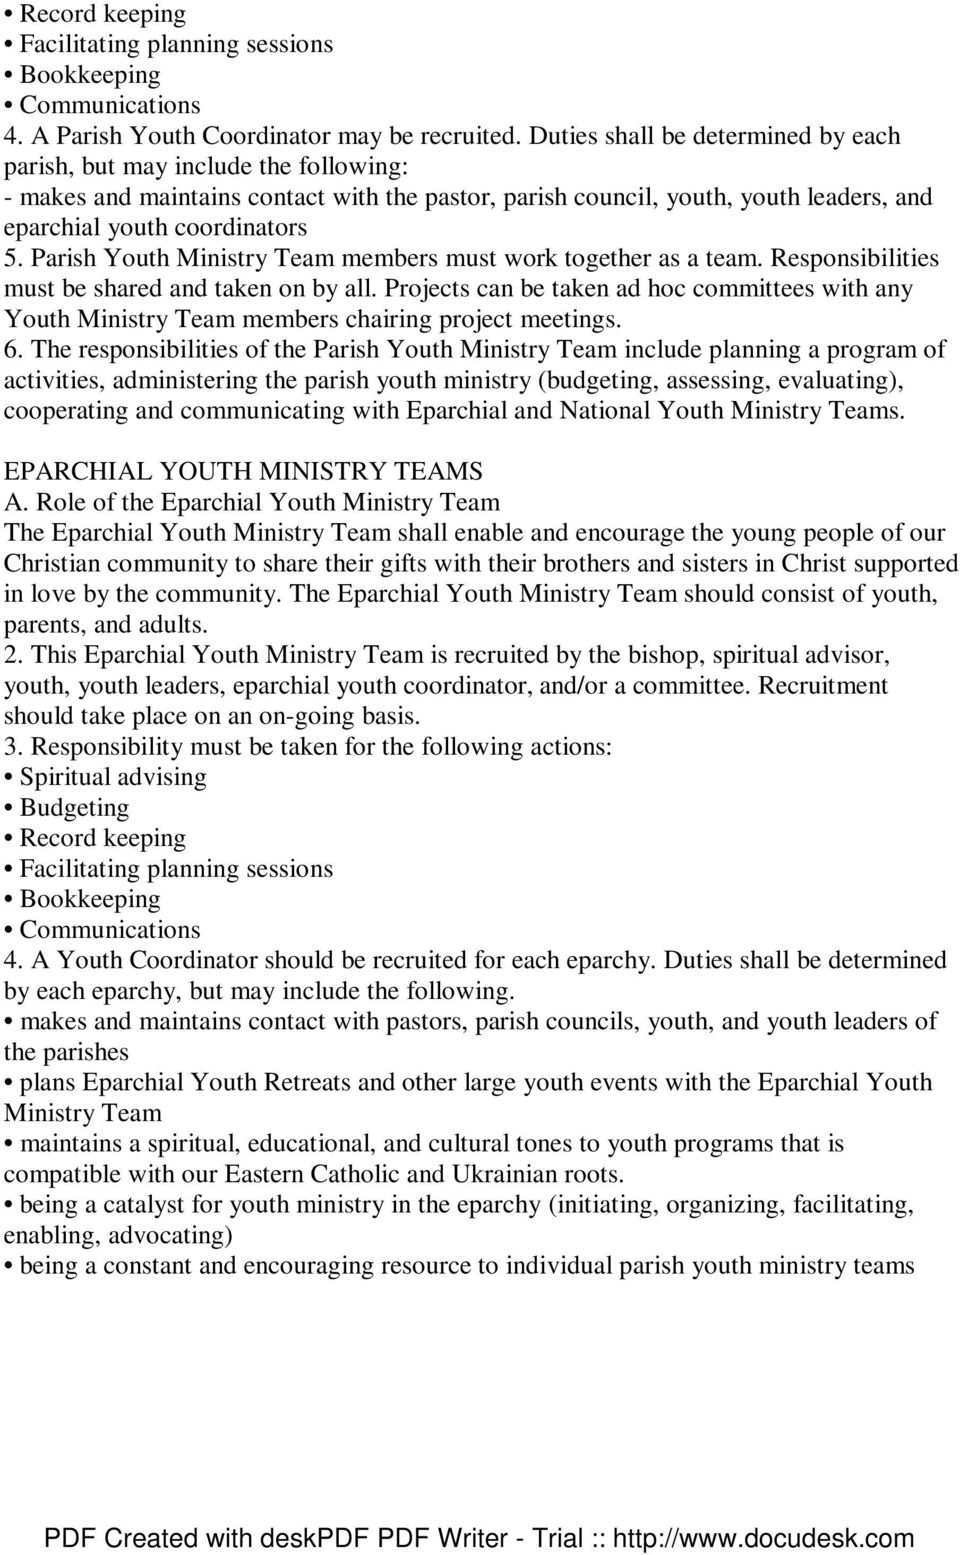 Parish Youth Ministry Team members must work together as a team. Responsibilities must be shared and taken on by all.